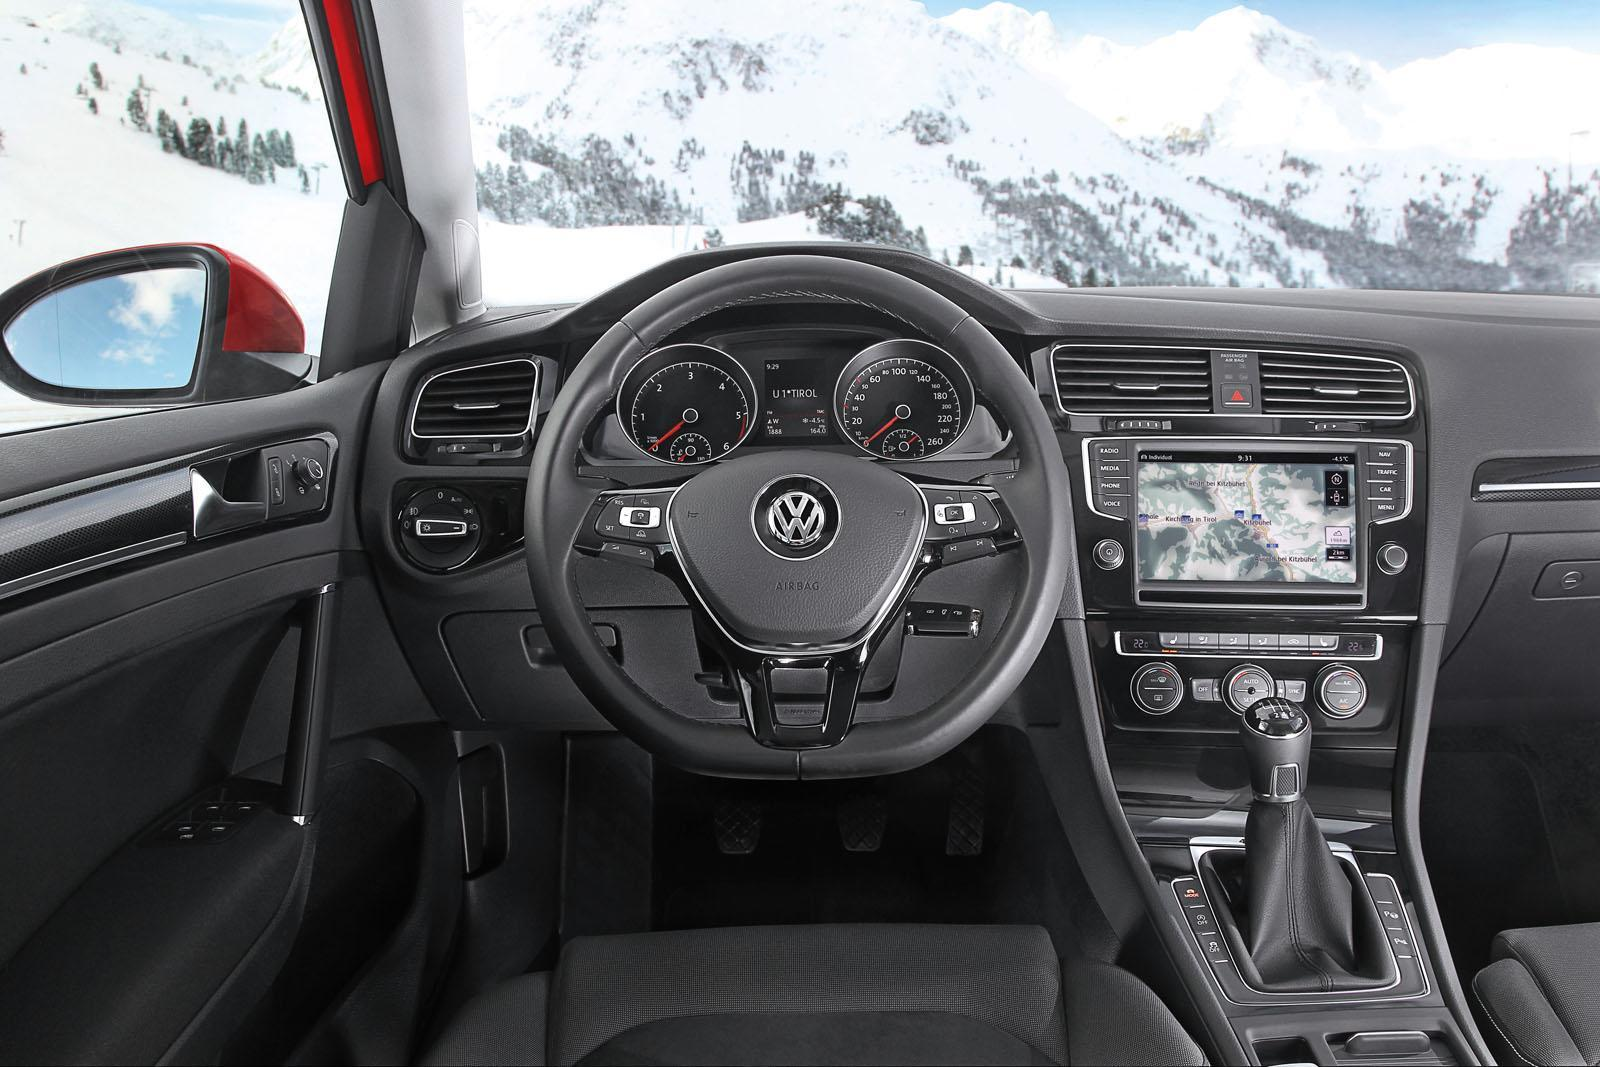 Vw golf 7 4motion 2013 la transmission 4x4 en d tails for Interieur golf 3 vr6